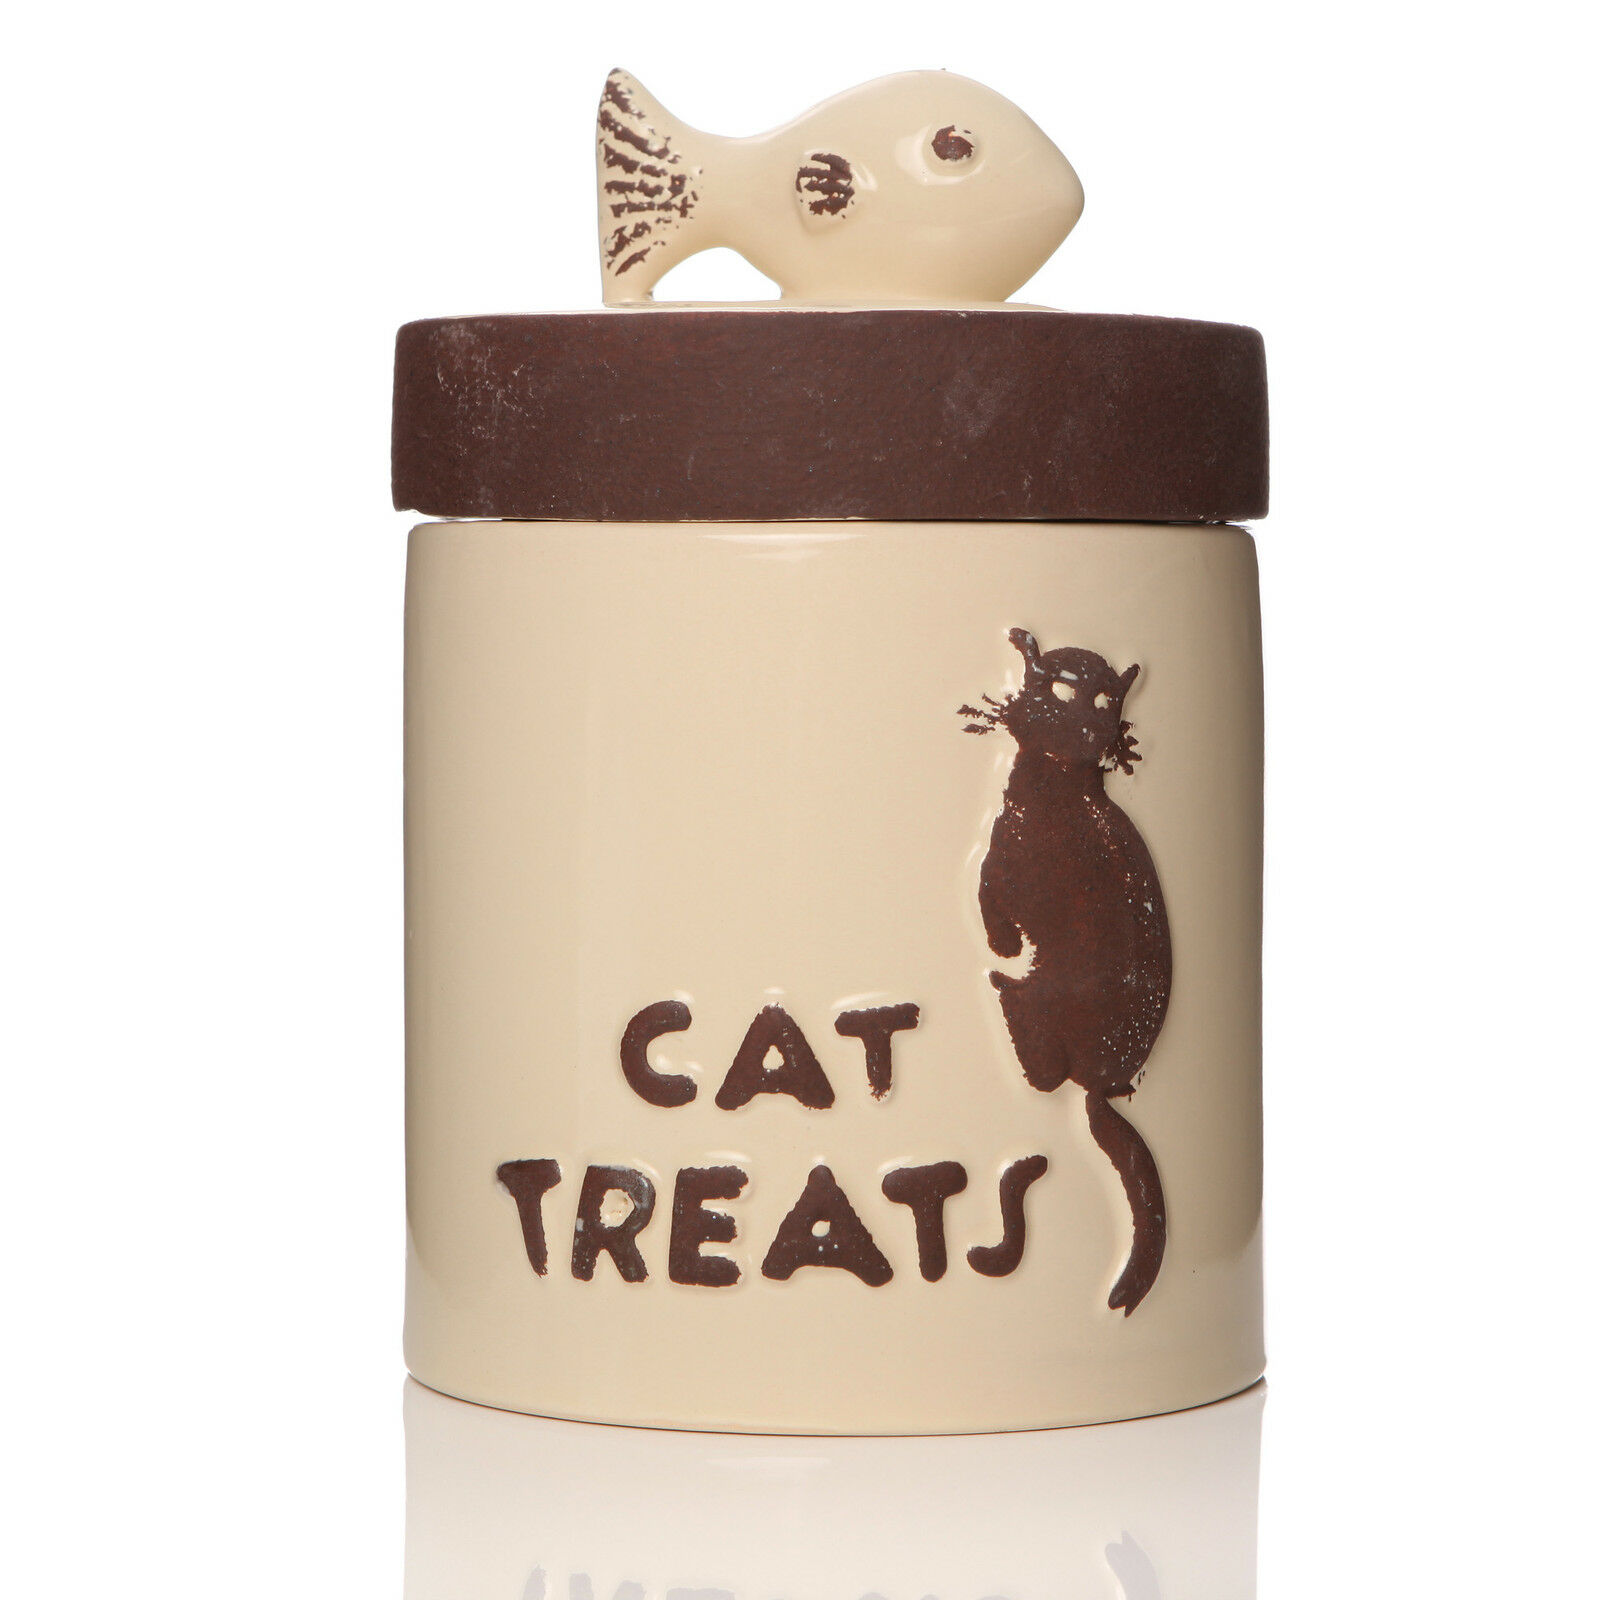 Cat Kitten Pet Food Dry Biscuit Treat Storage Container Canister Vintage Jar